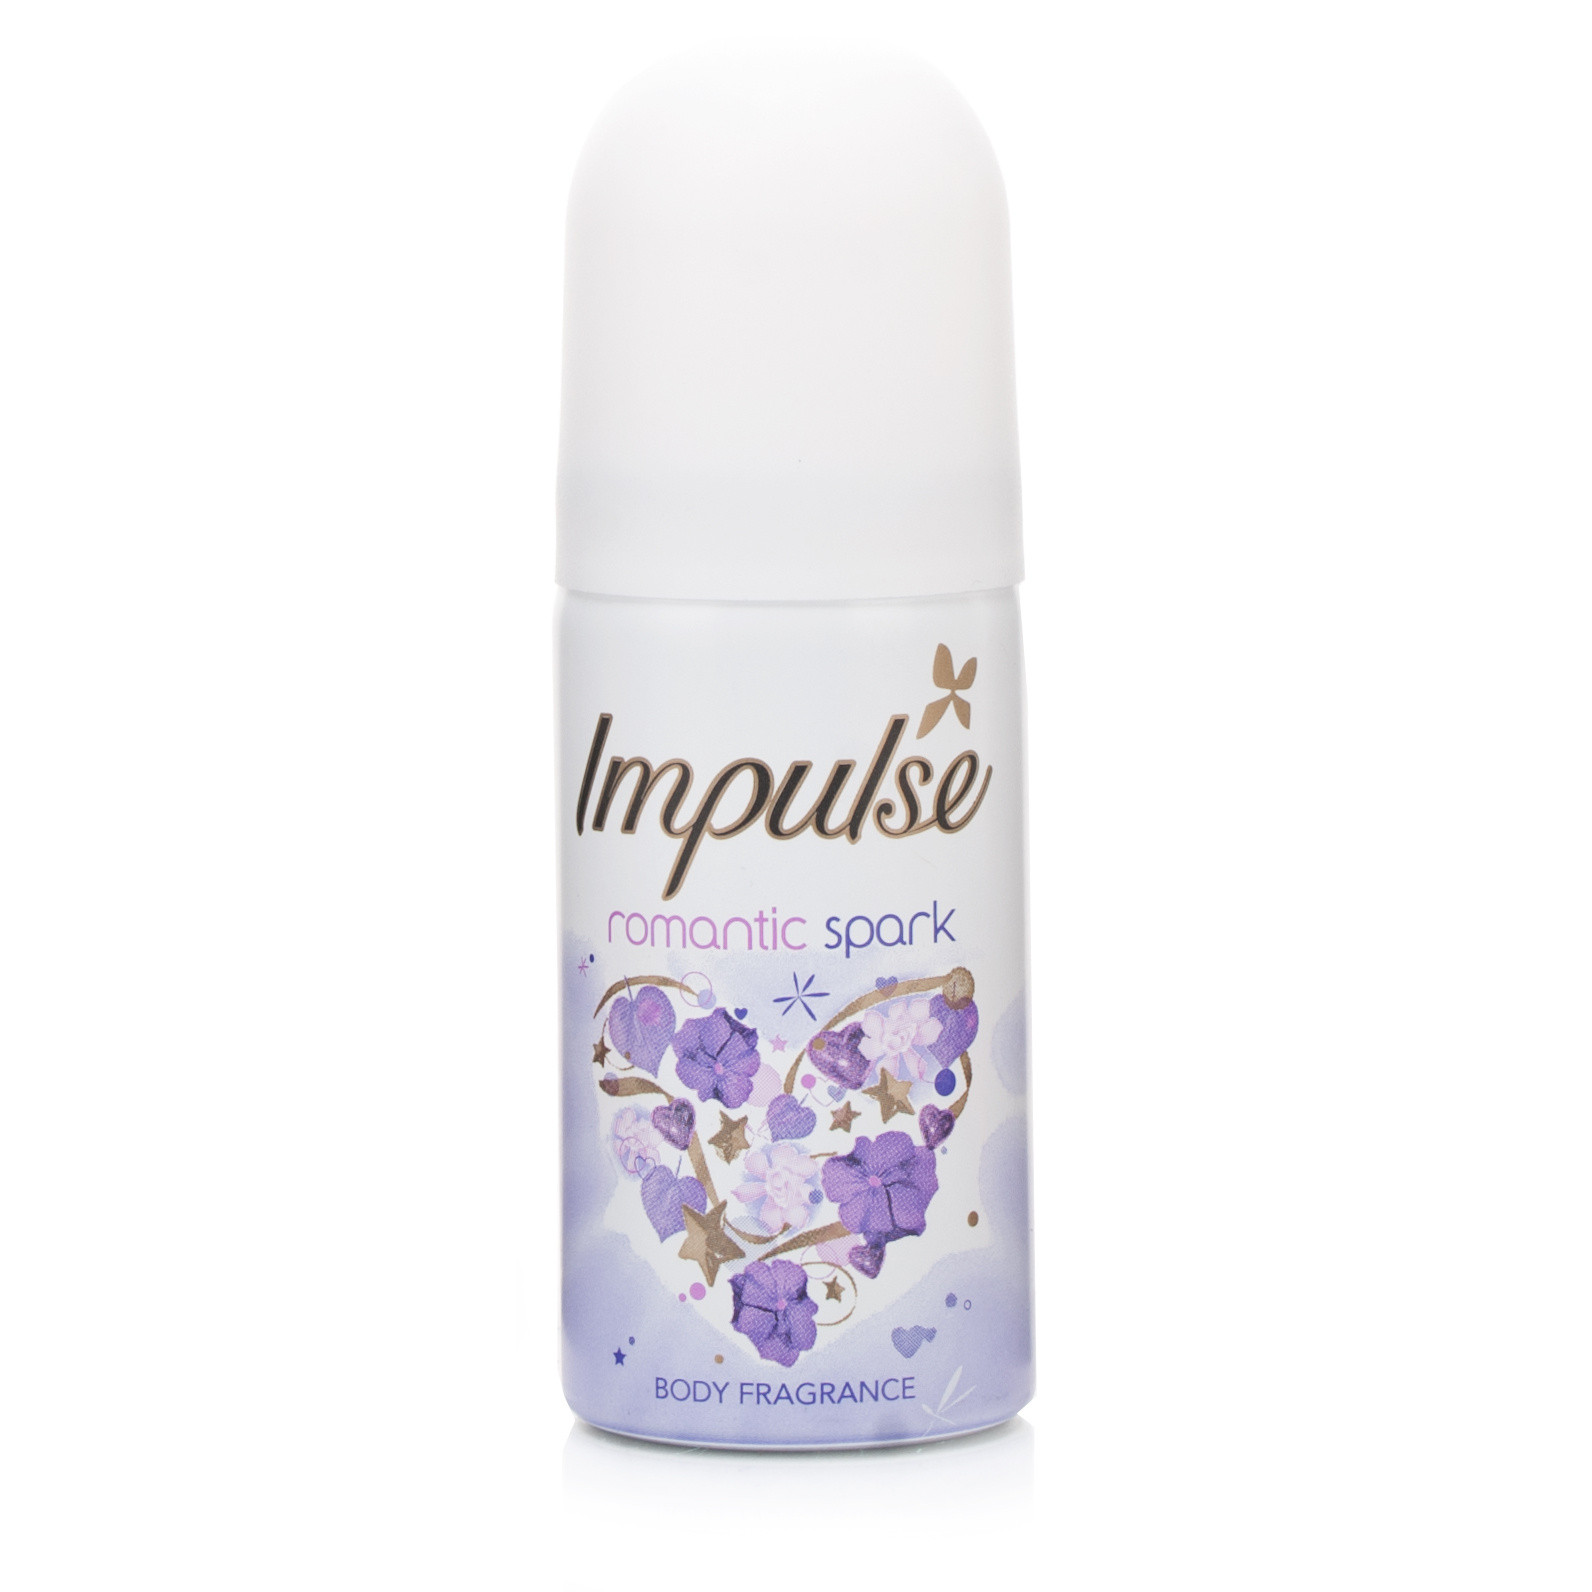 Impulse Body Spray Travel Size - Romantic Spark